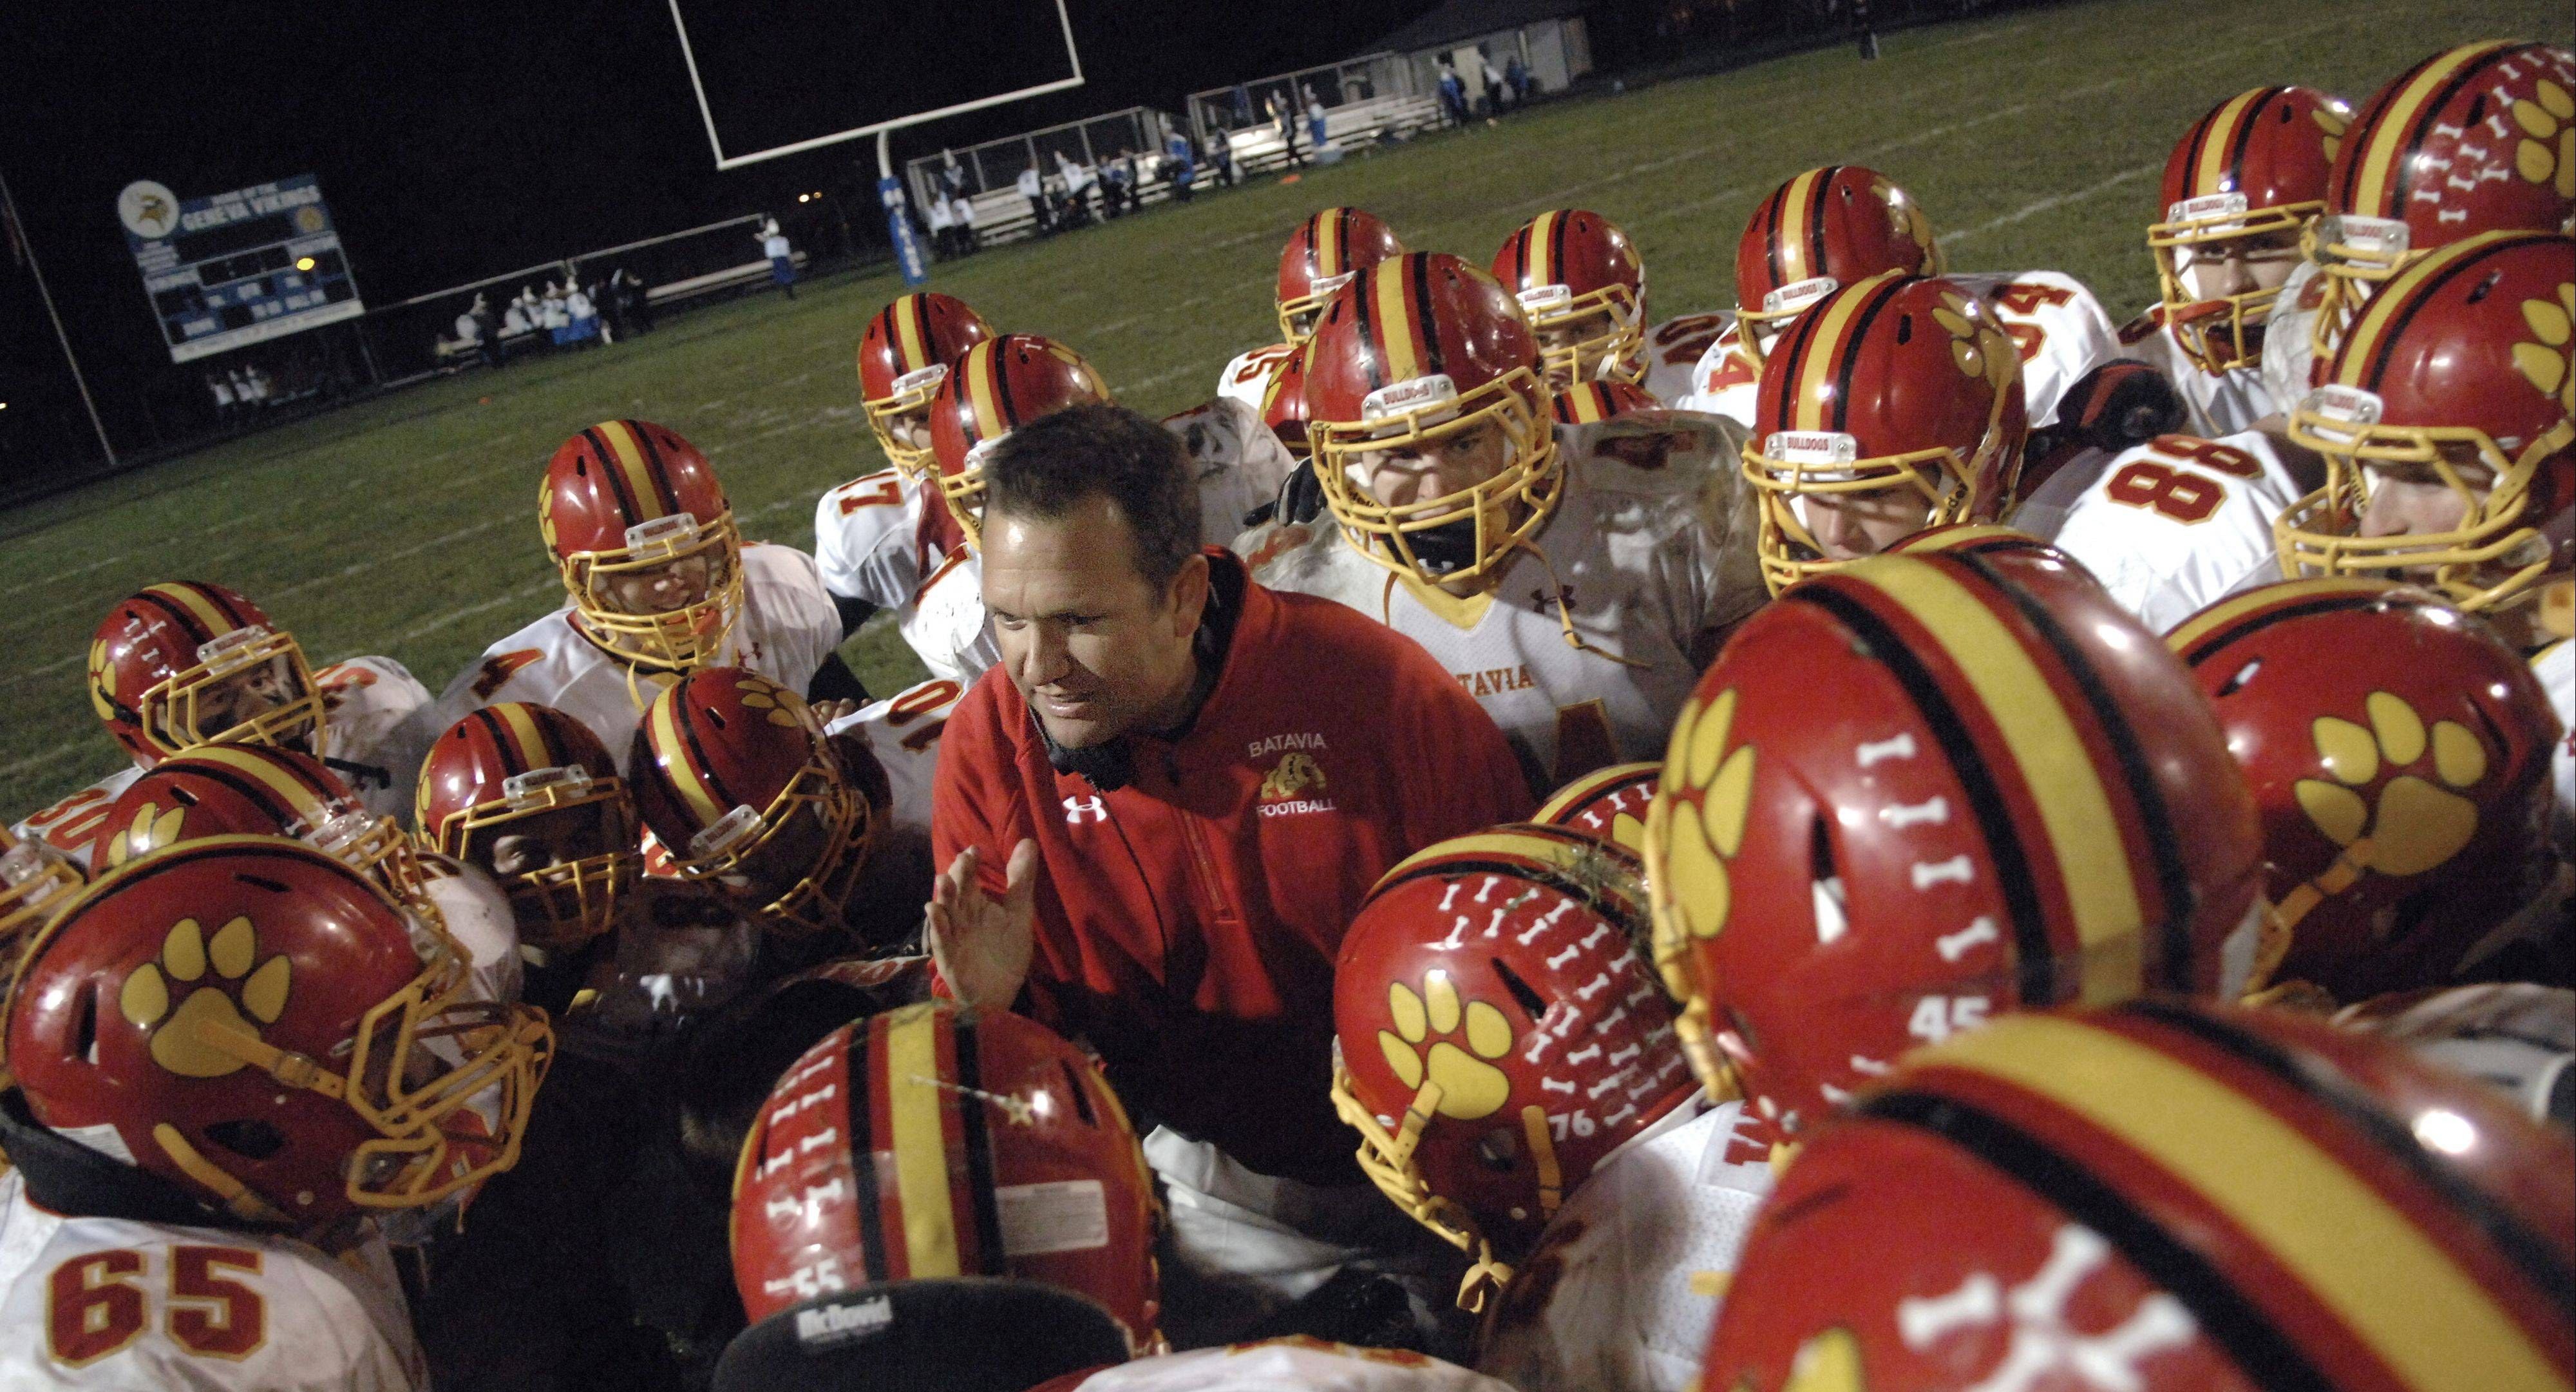 Batavia coach Dennis Piron talks with the team after their victory over Geneva last fall, a win that ranks as one of the best Craig Brueske saw this school year.